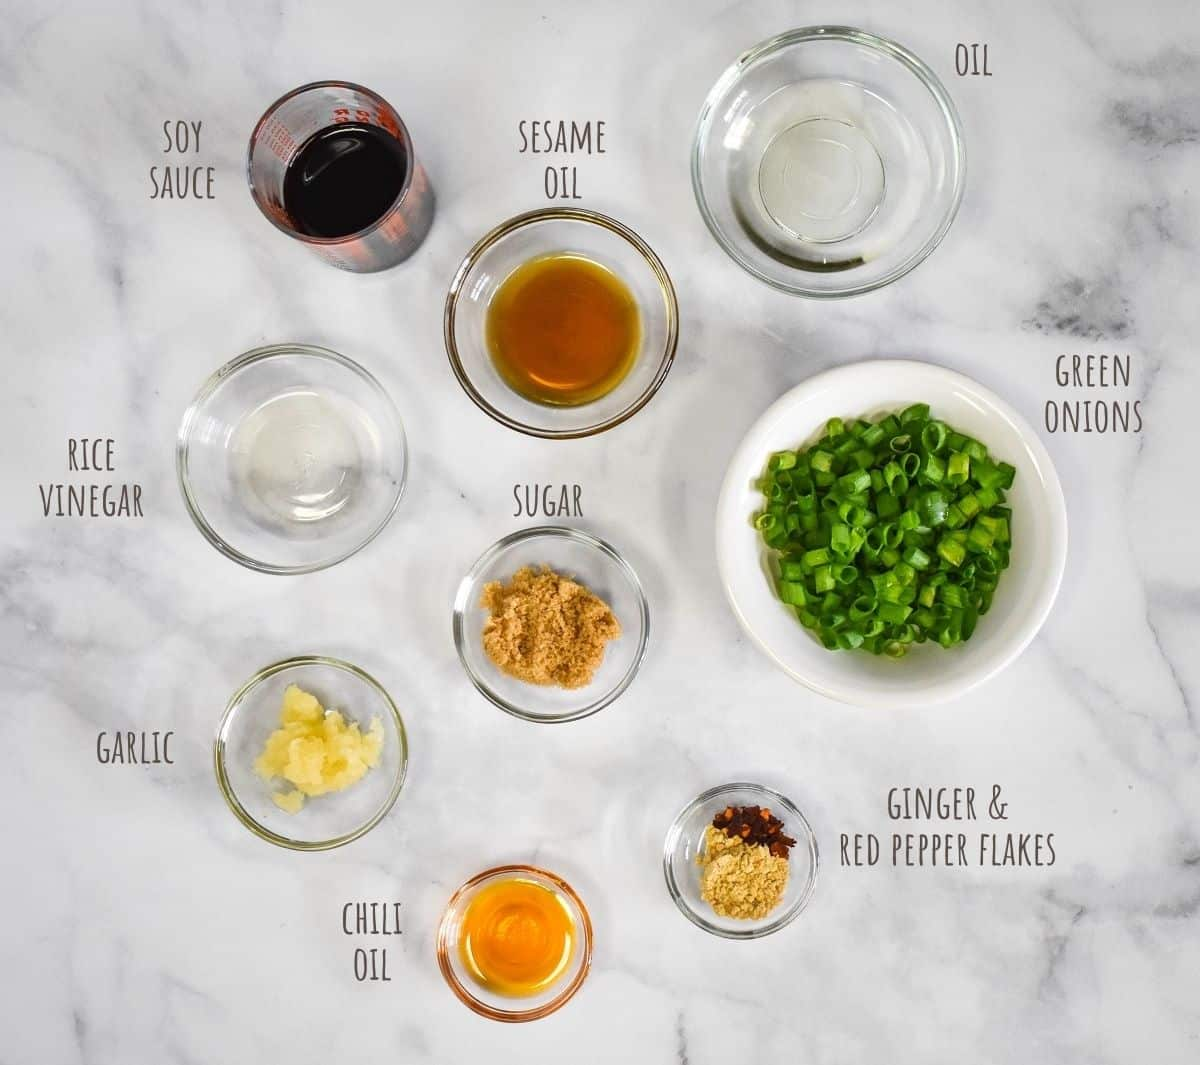 The ingredients for the sesame sauce arranged on a white tables in glass bowls. The image has the name of the ingredient in small letters next to each.